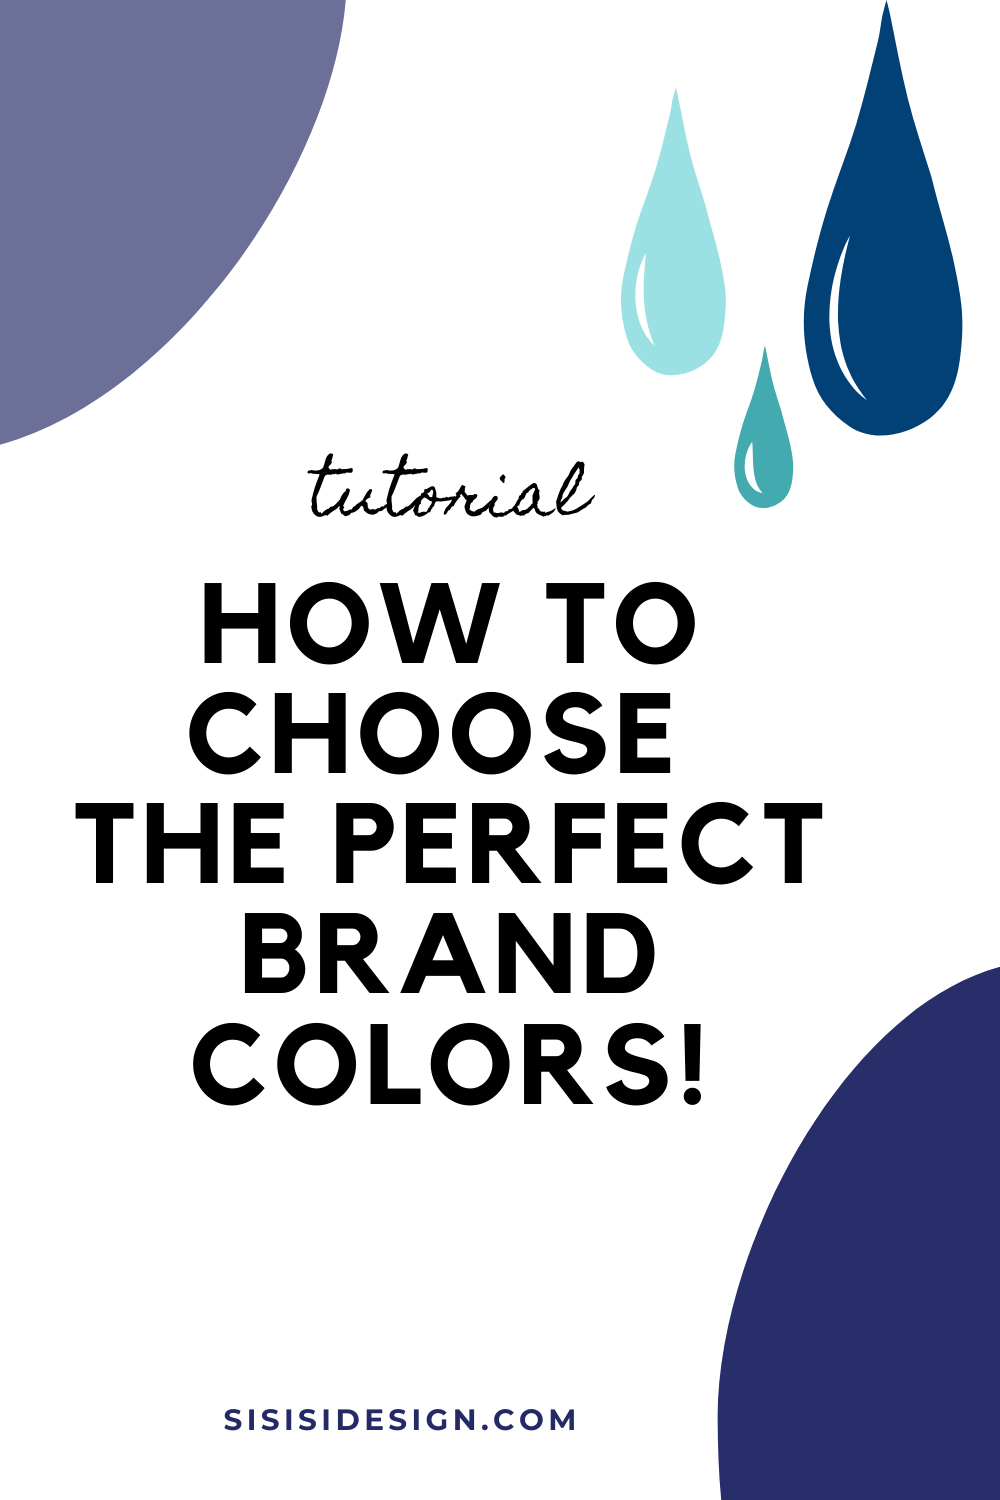 How to choose the perfect brand colors!